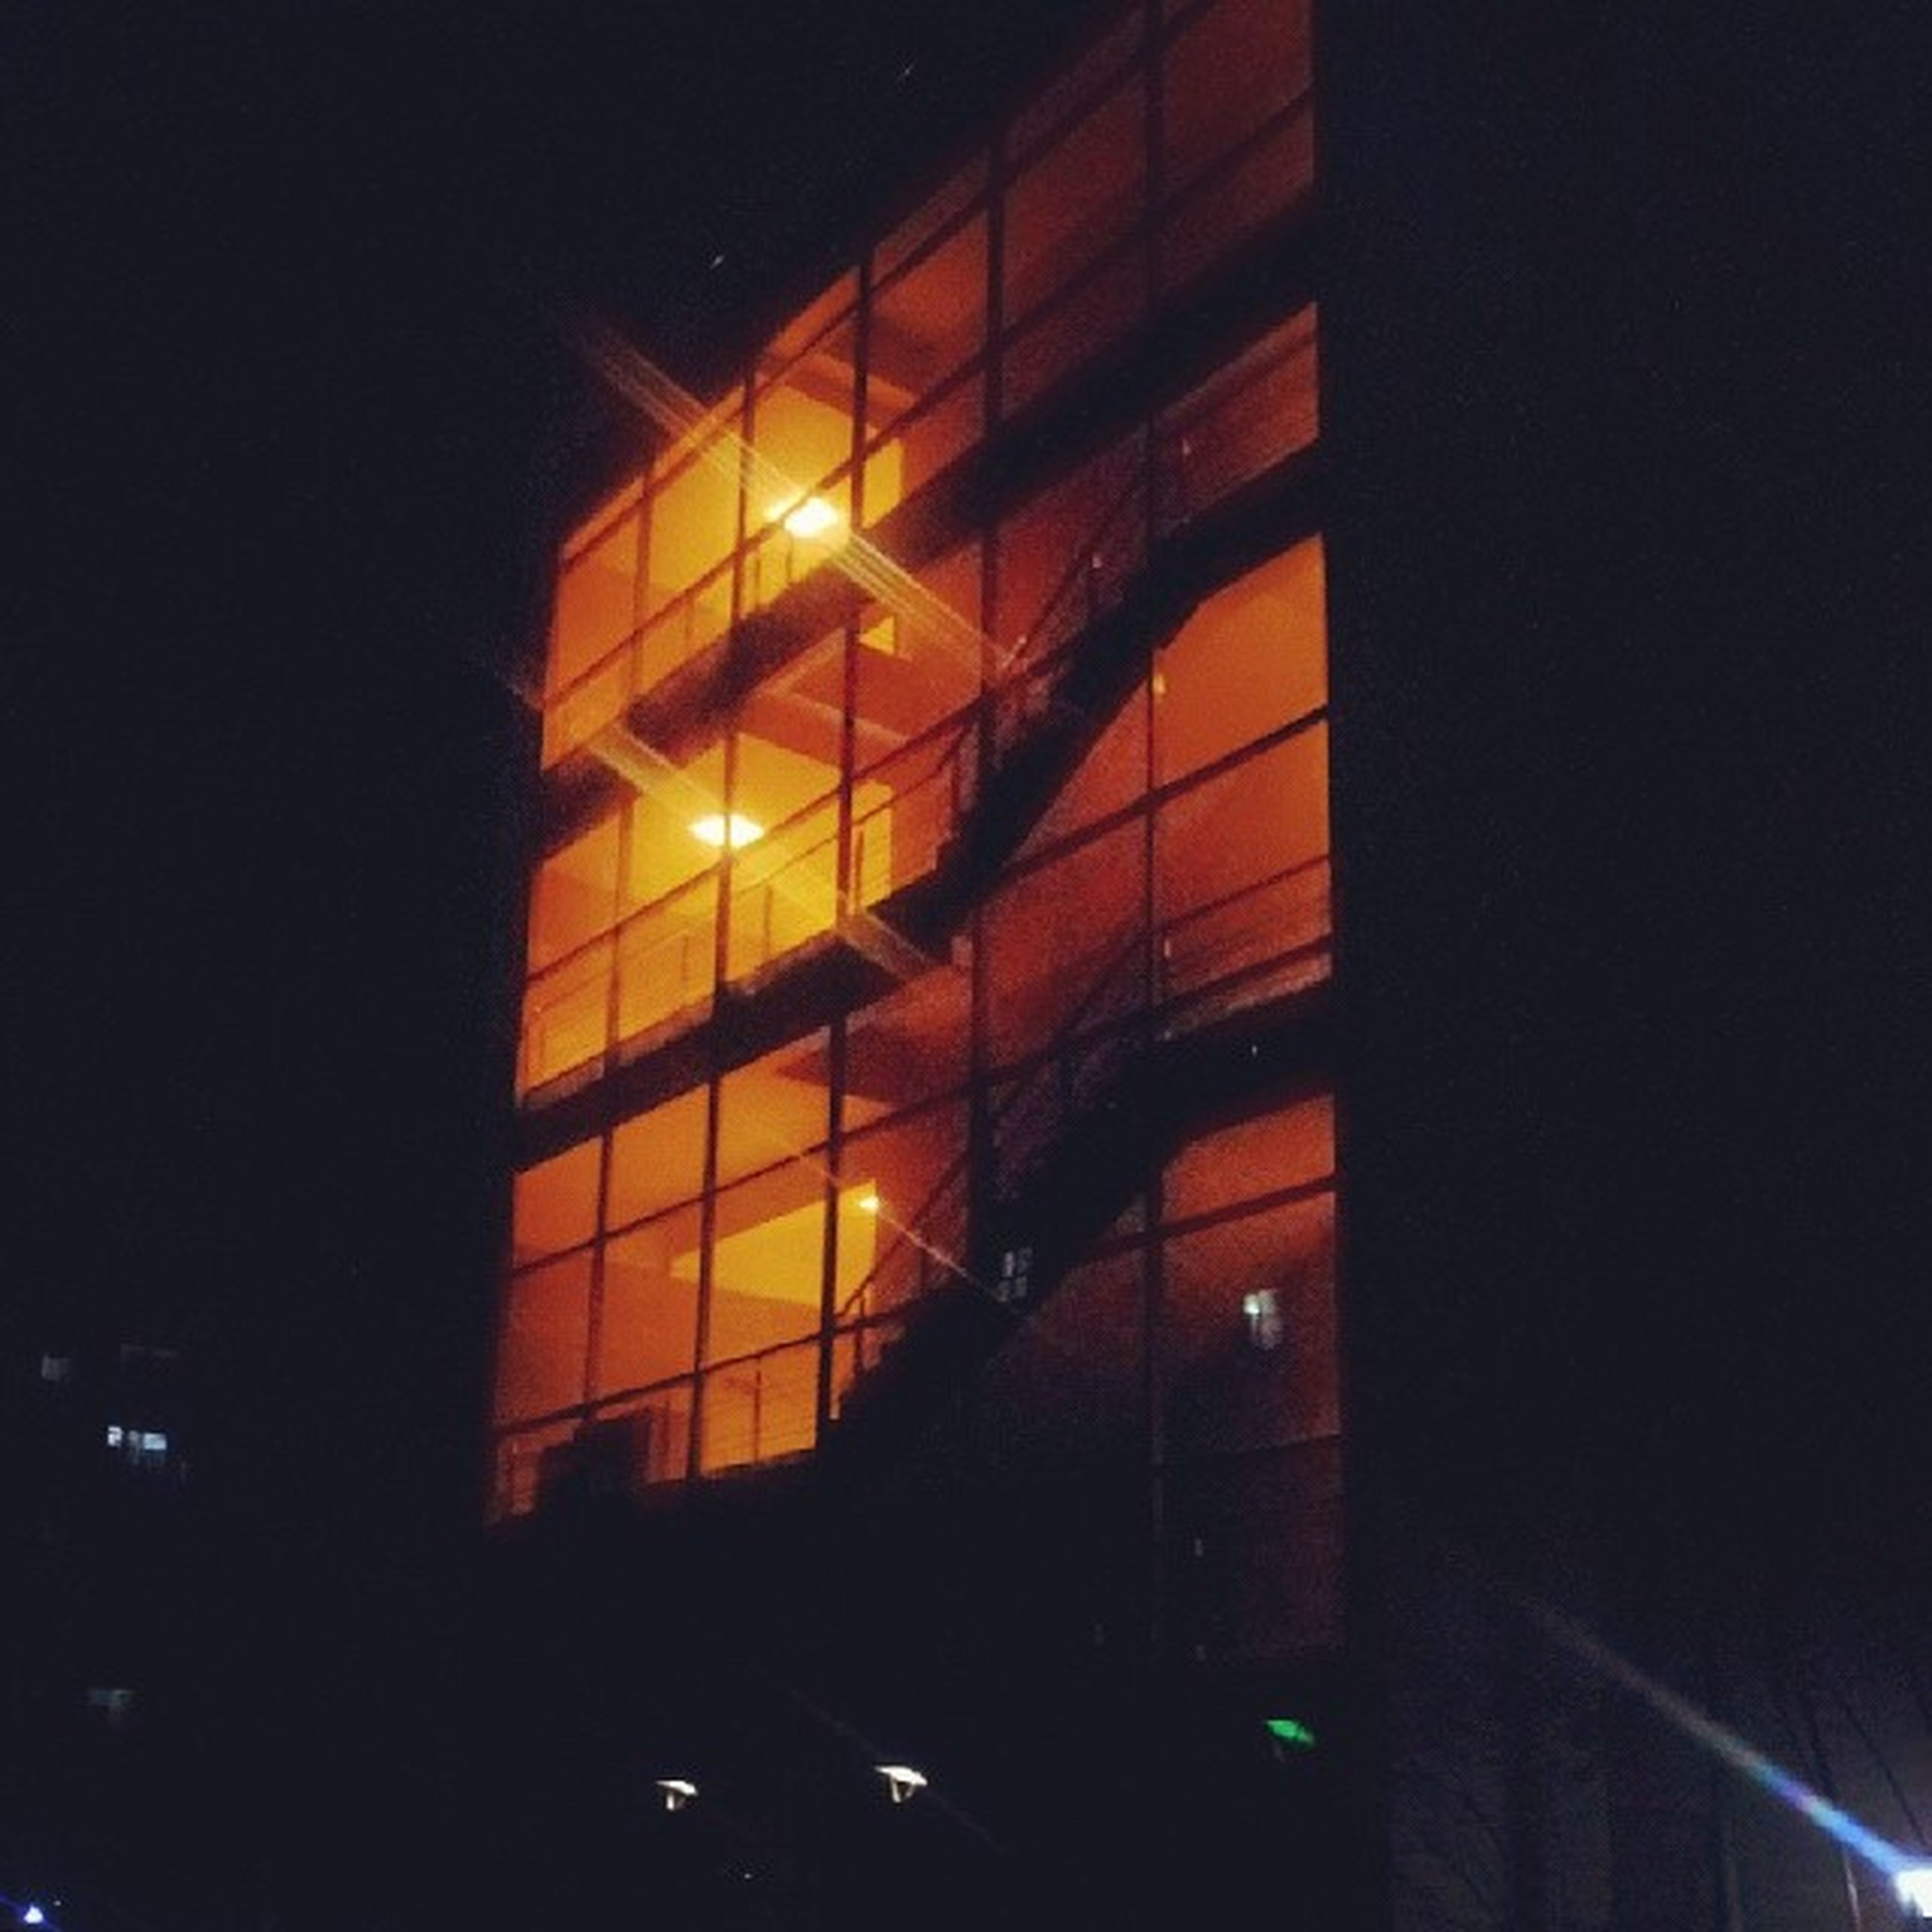 illuminated, night, window, dark, architecture, built structure, indoors, lighting equipment, glass - material, light - natural phenomenon, low angle view, building exterior, glowing, building, no people, silhouette, light, reflection, pattern, transparent